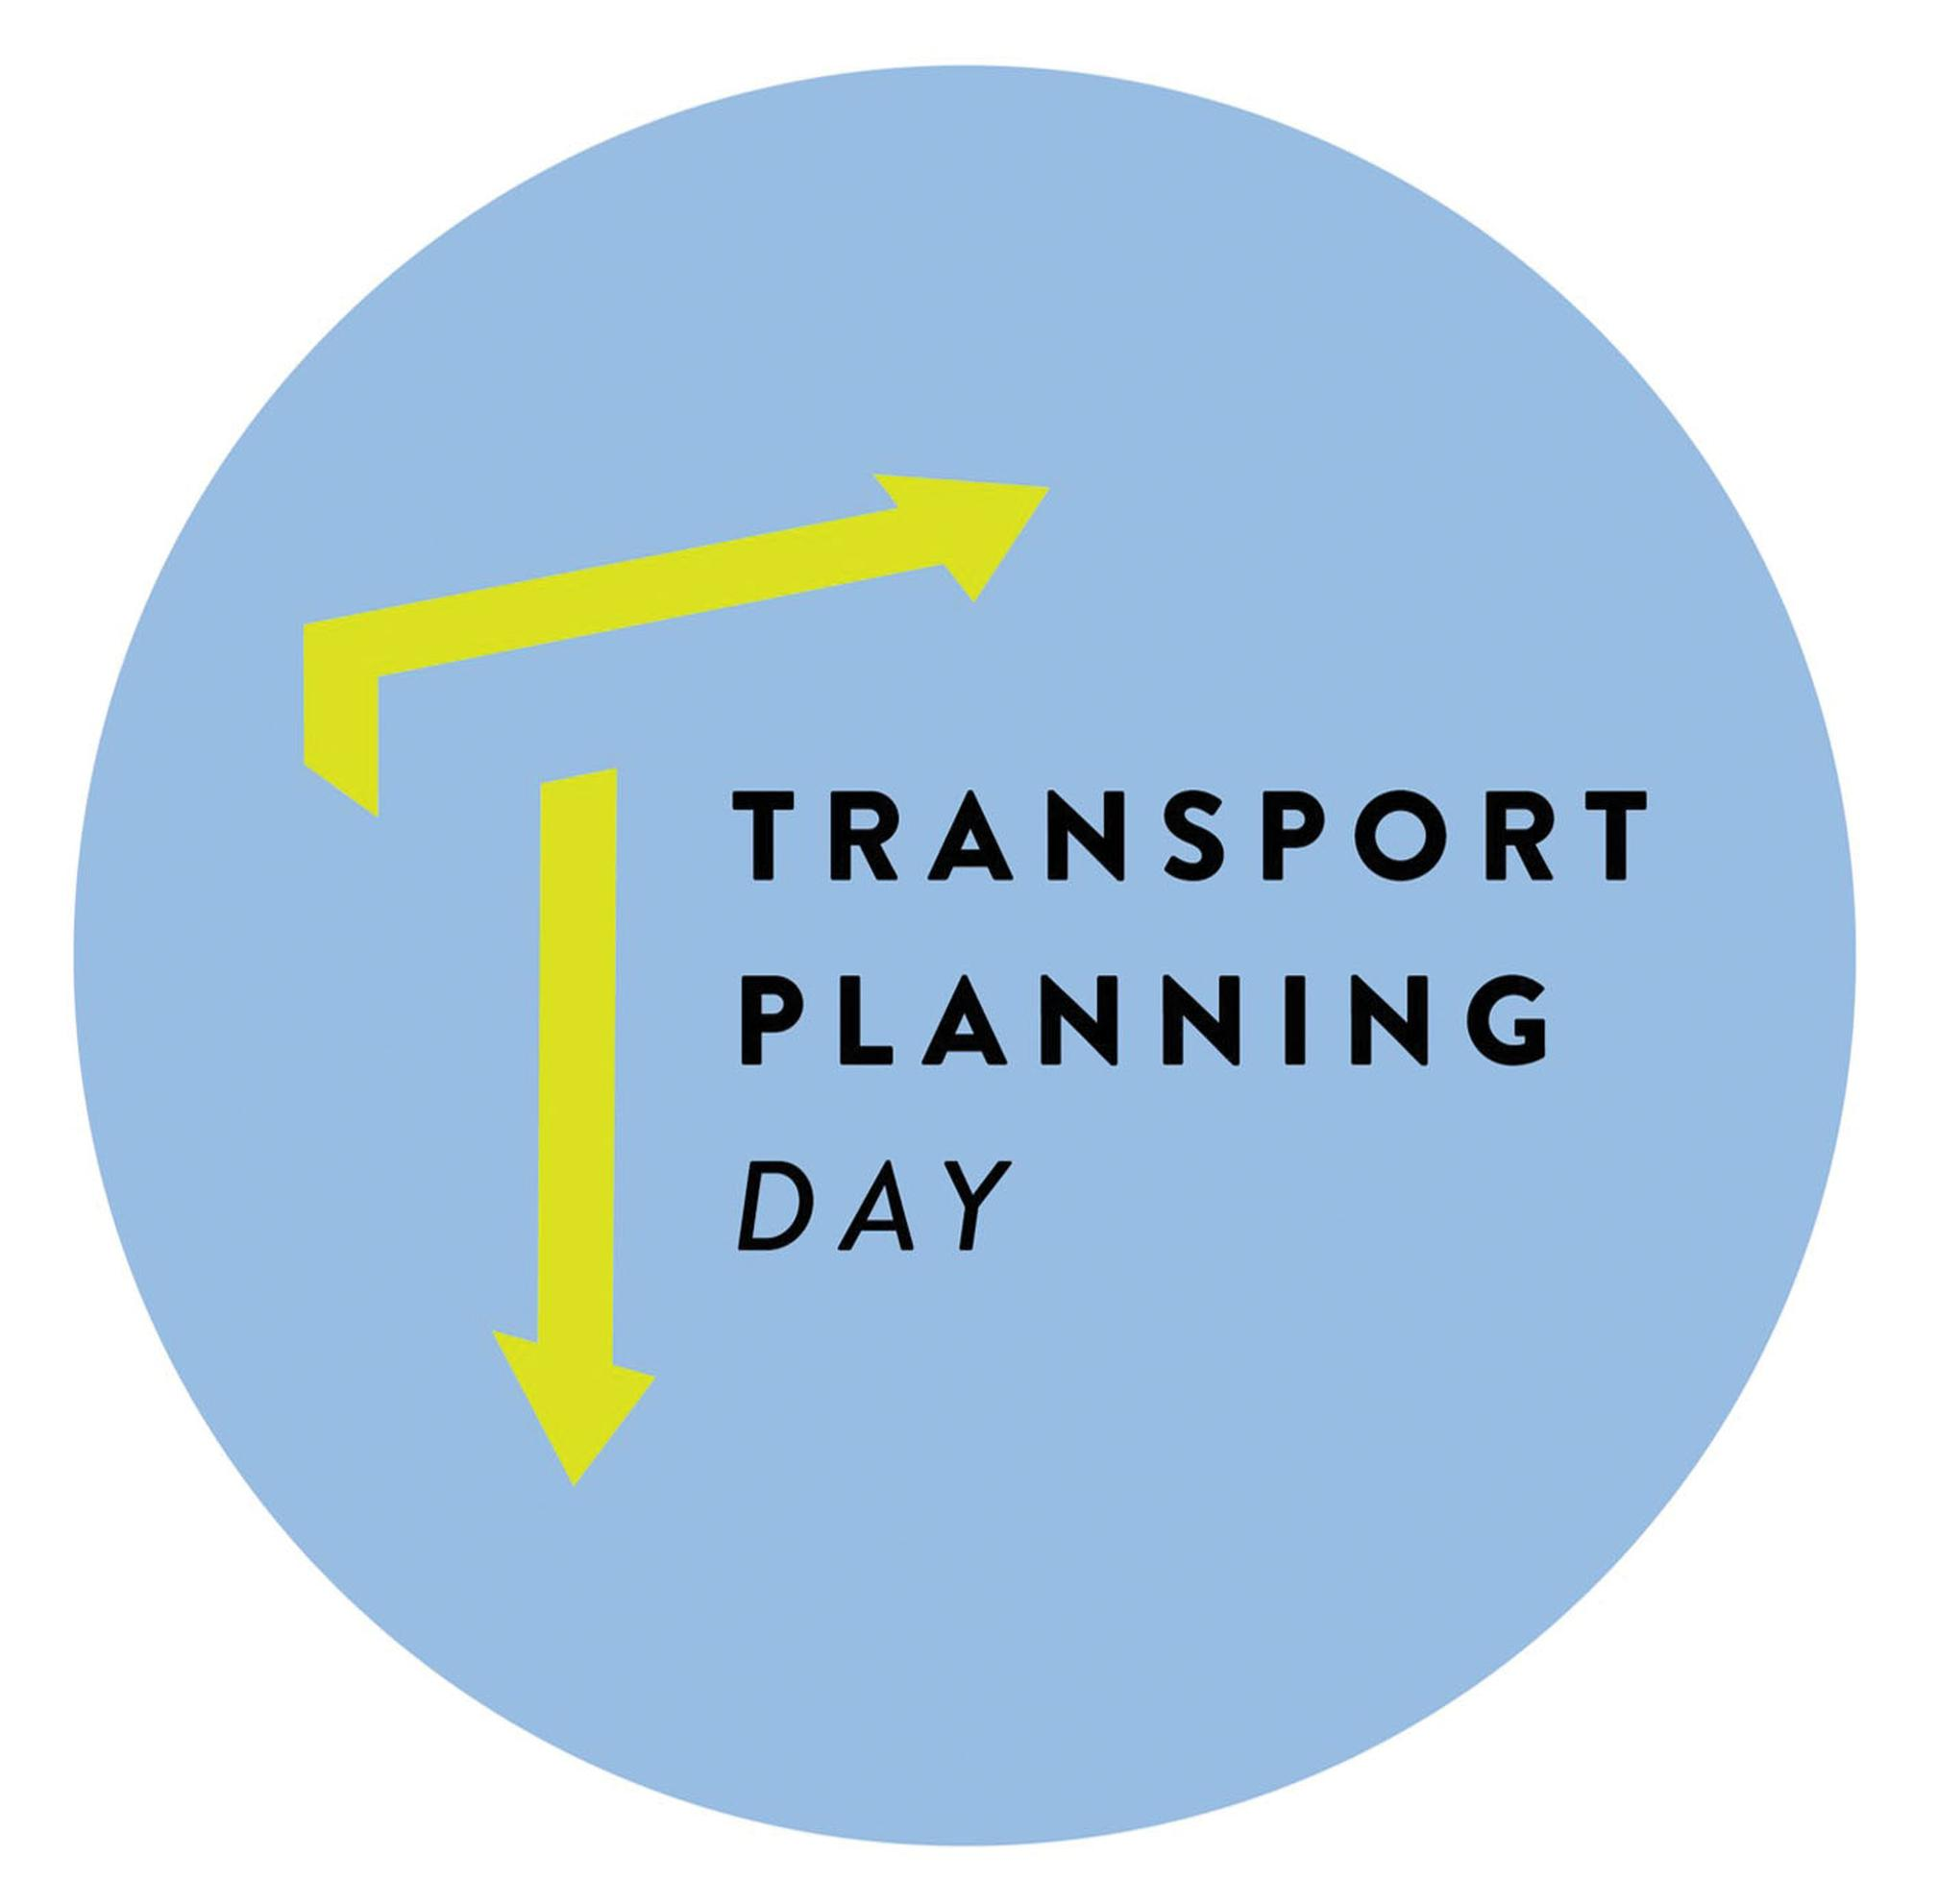 Transport Planning Day: celebrating a profession that can do so much good